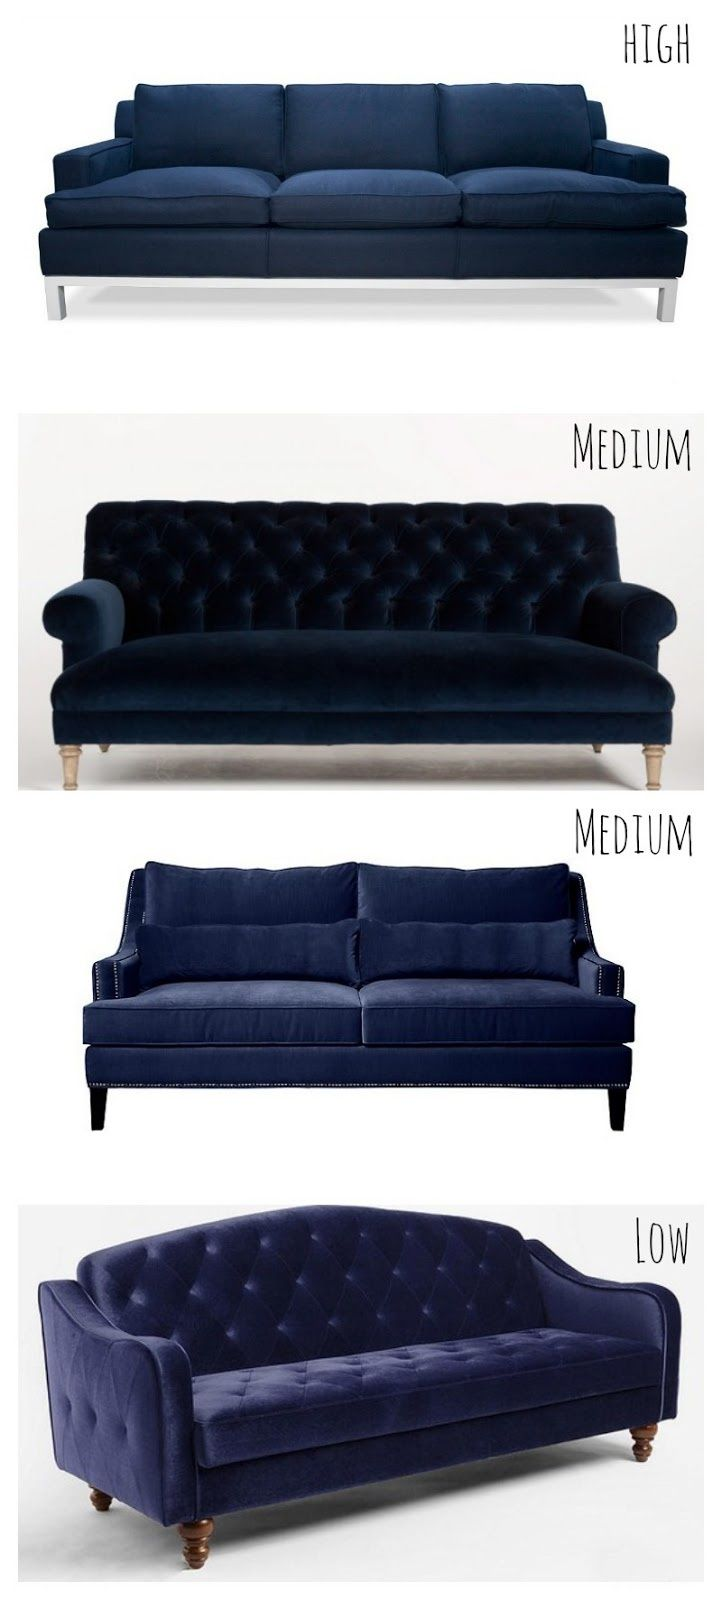 Navy Blue Sofa Couches At An Array Of Prices Furniture Home Living Room Decor